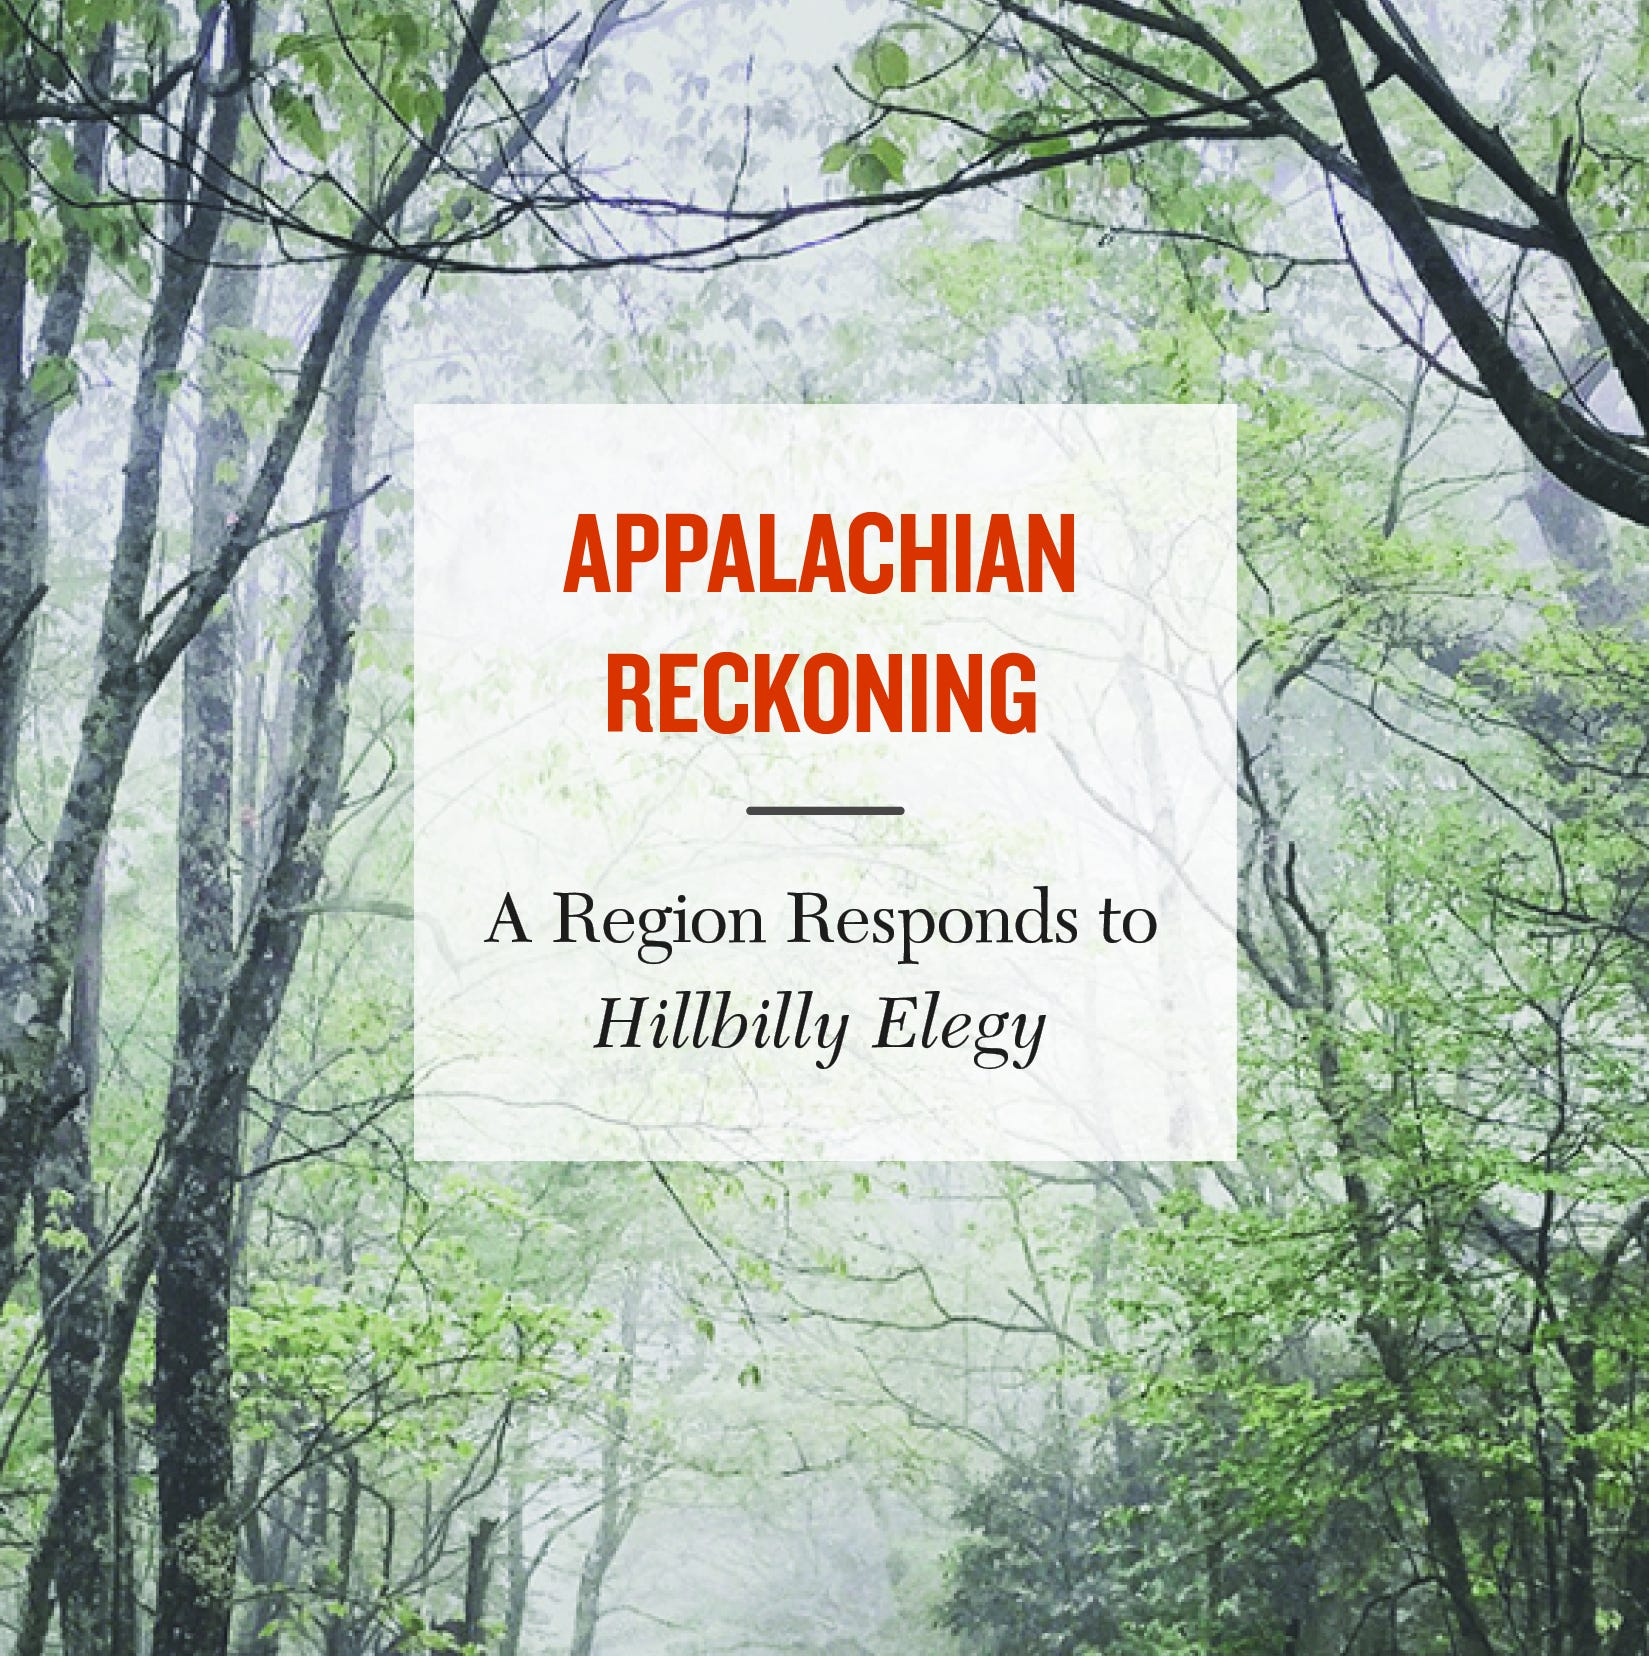 Malaprop's hosts studies of Appalachia through literature